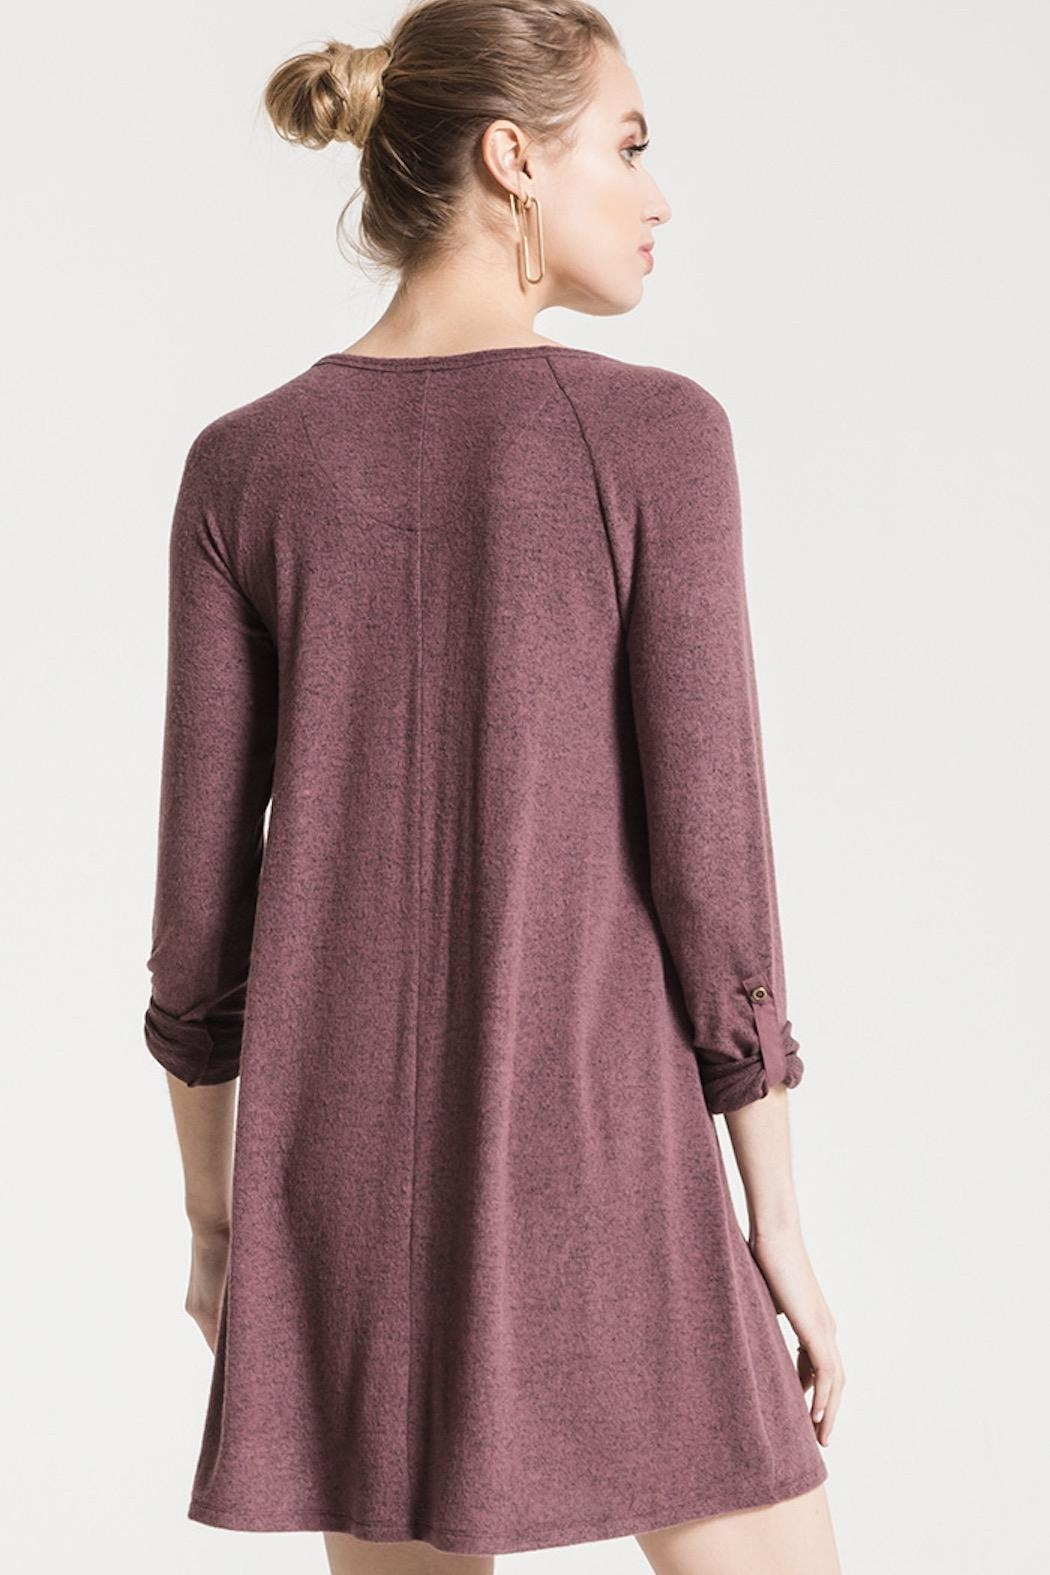 z supply Sweater Henley Dress - Side Cropped Image